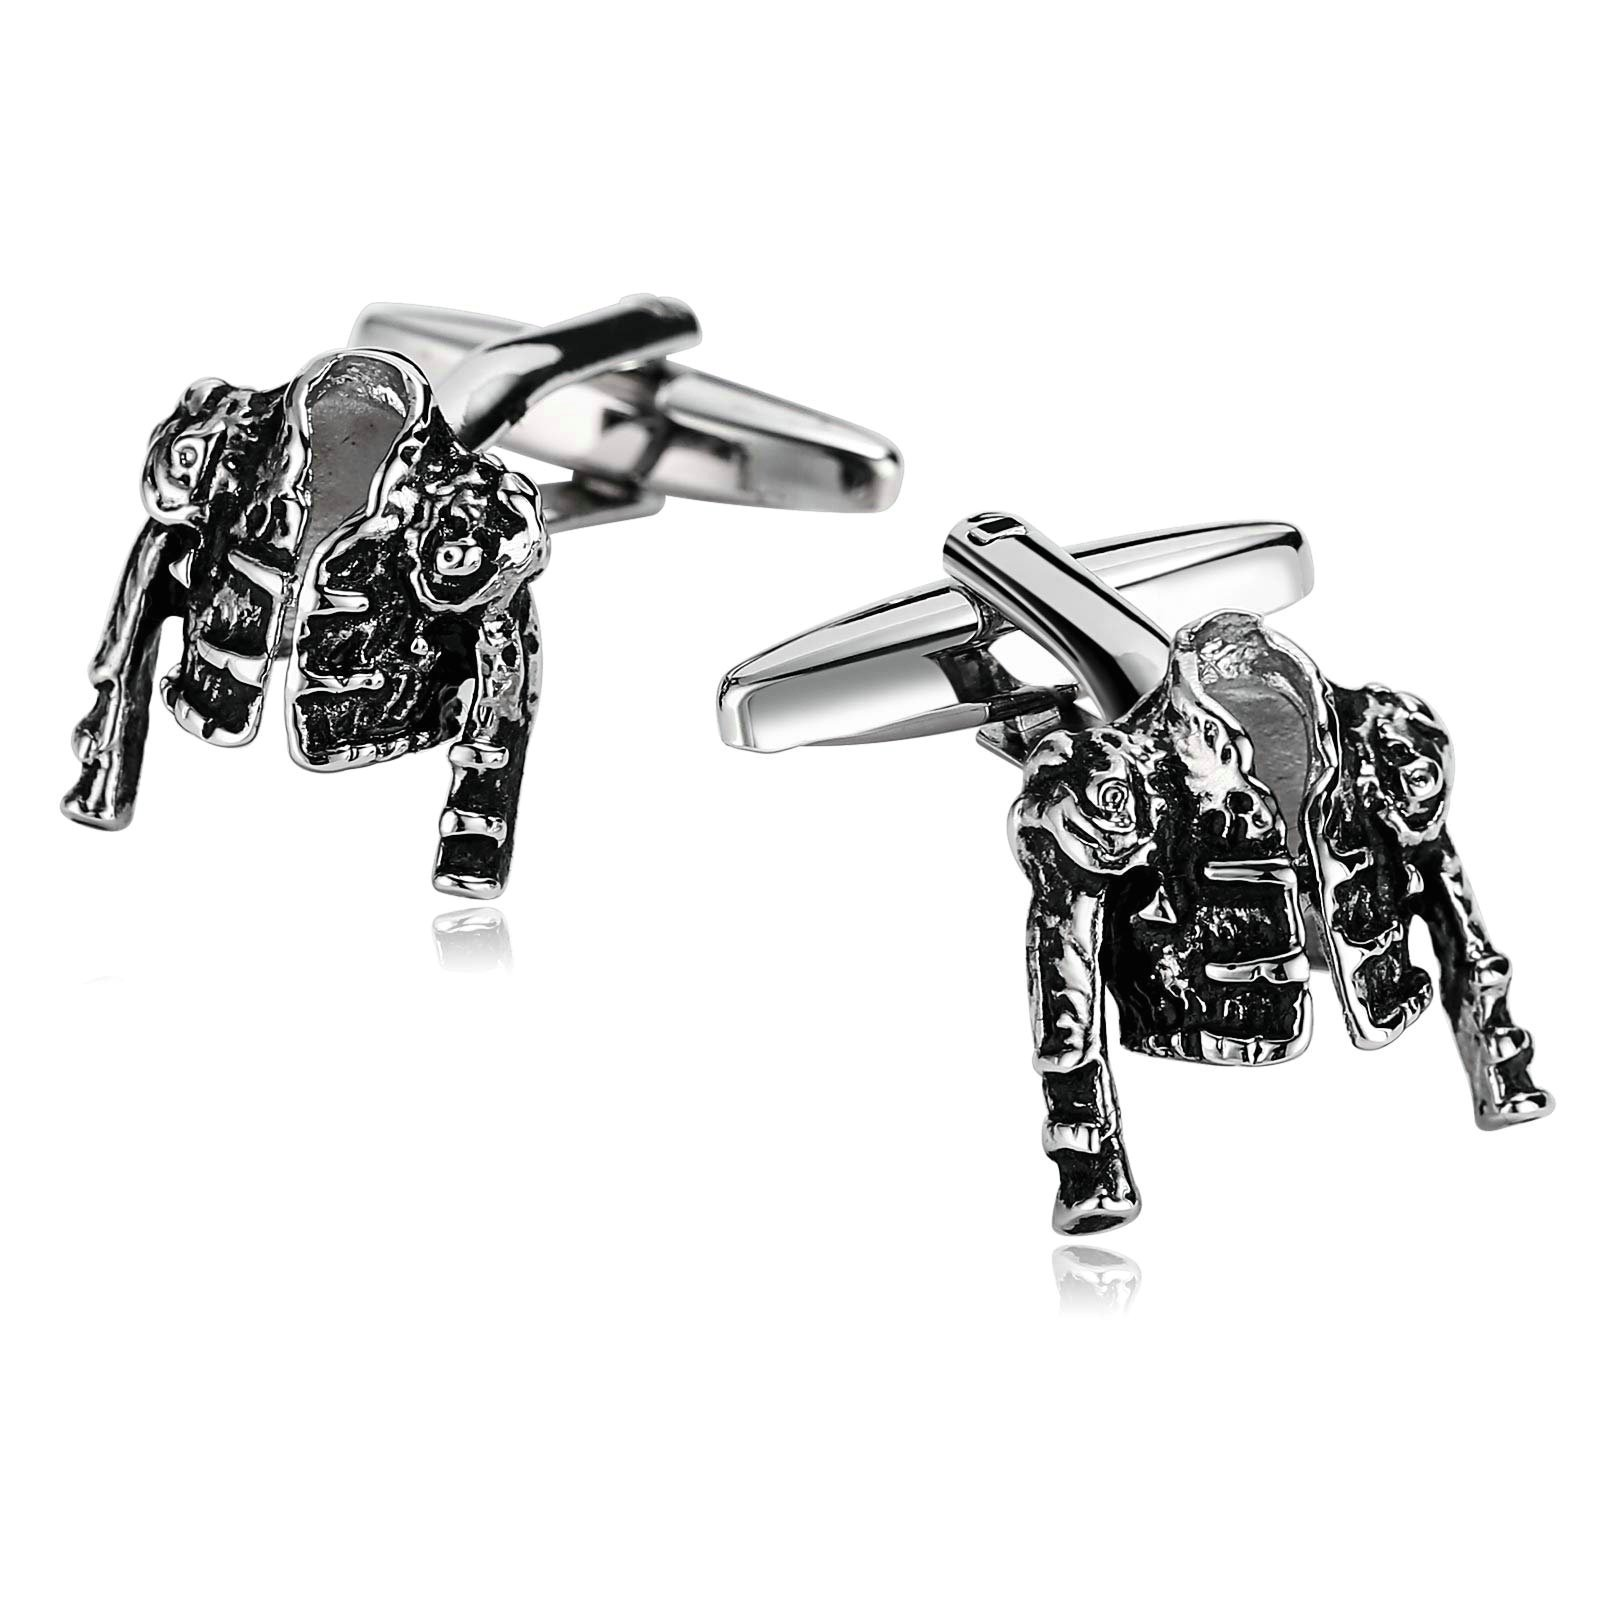 Aooaz Mens Stainless Steel Cufflinks Clothes Jacket Vest Silver Black Cufflinks Accessories With Gift Box